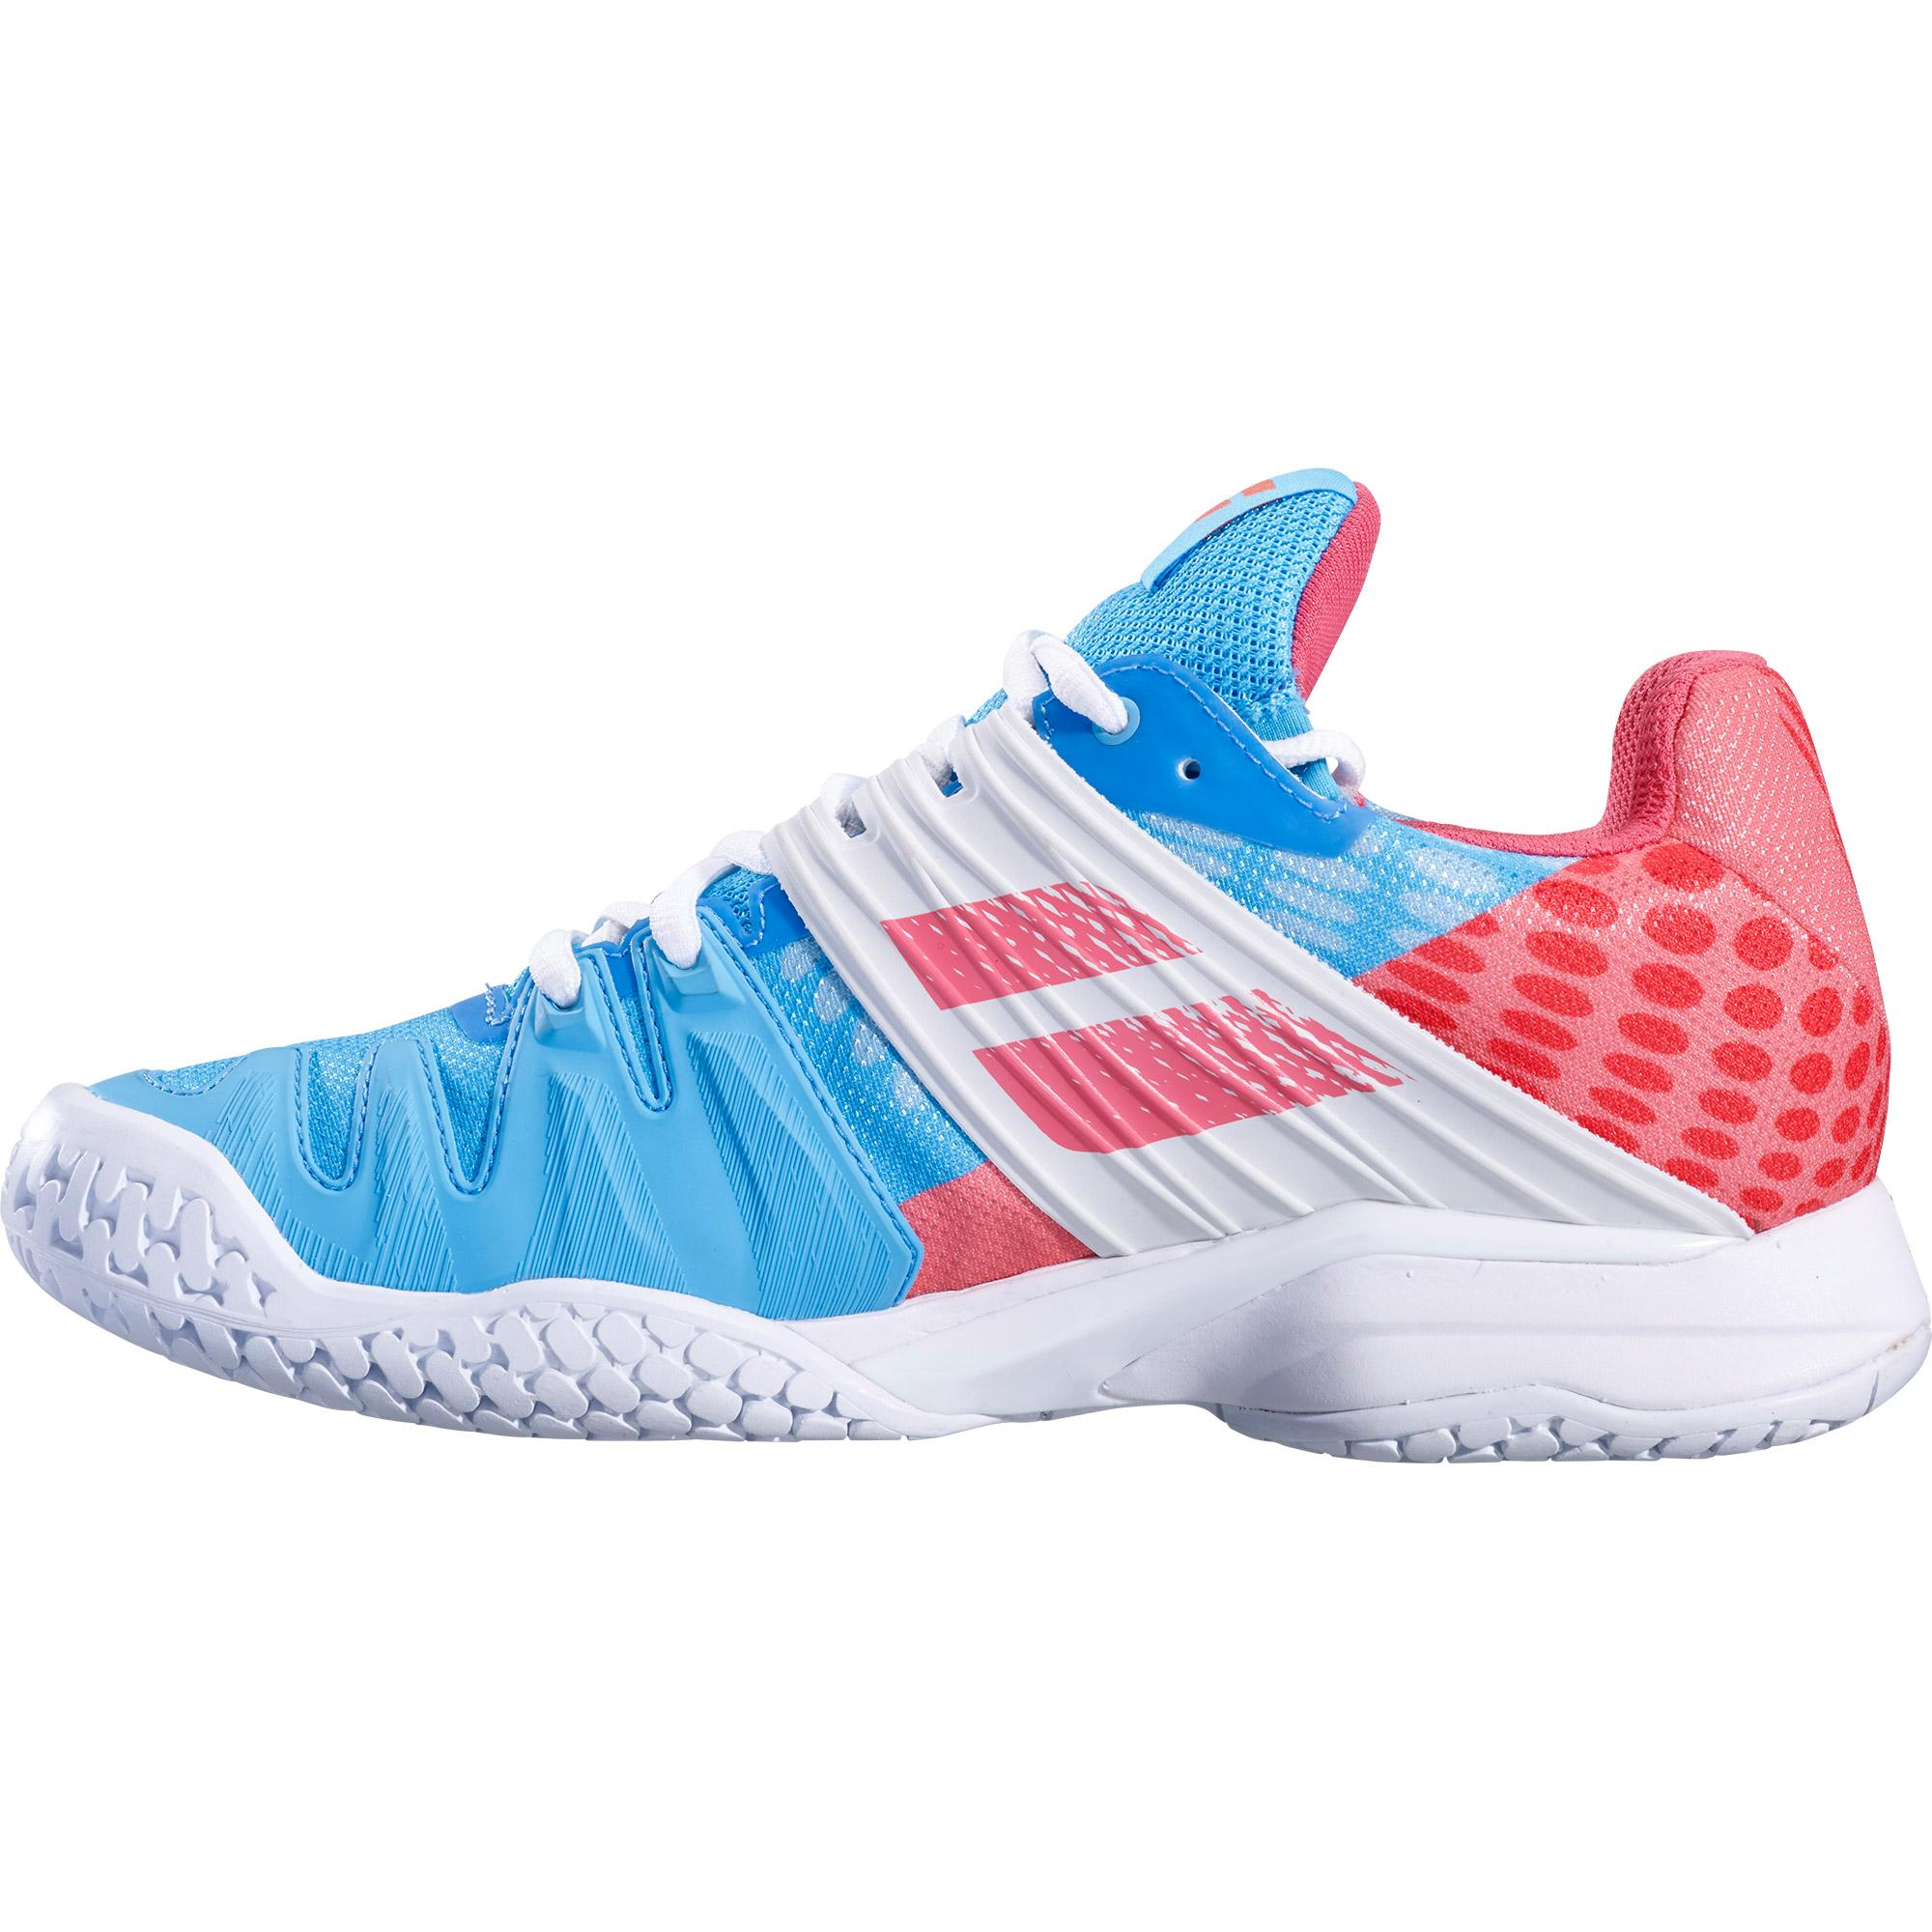 d528a8b7d257 Babolat Womens Propulse Fury Tennis Shoes - Sky Blue Pink ...